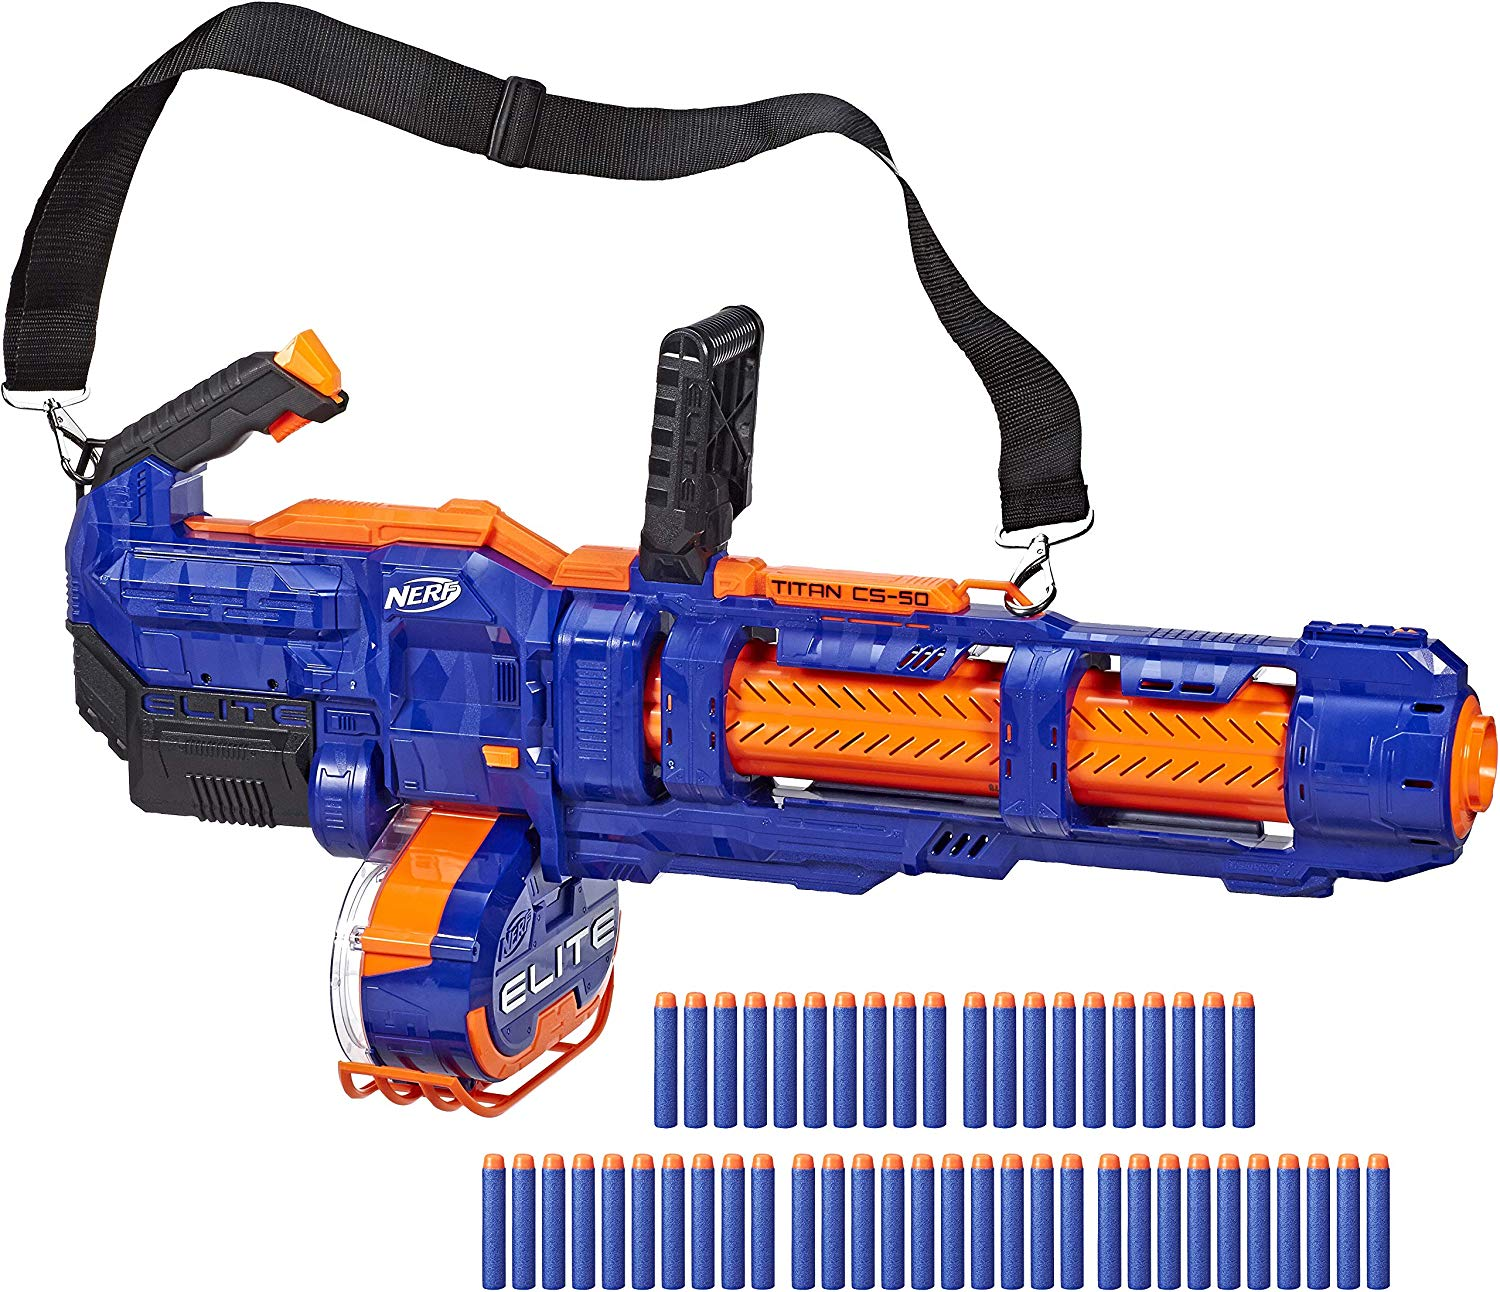 NERF Elite Titan CS-50 Toy Blaster with 50 Darts was $99.99, NOW $49.99 Shipped!